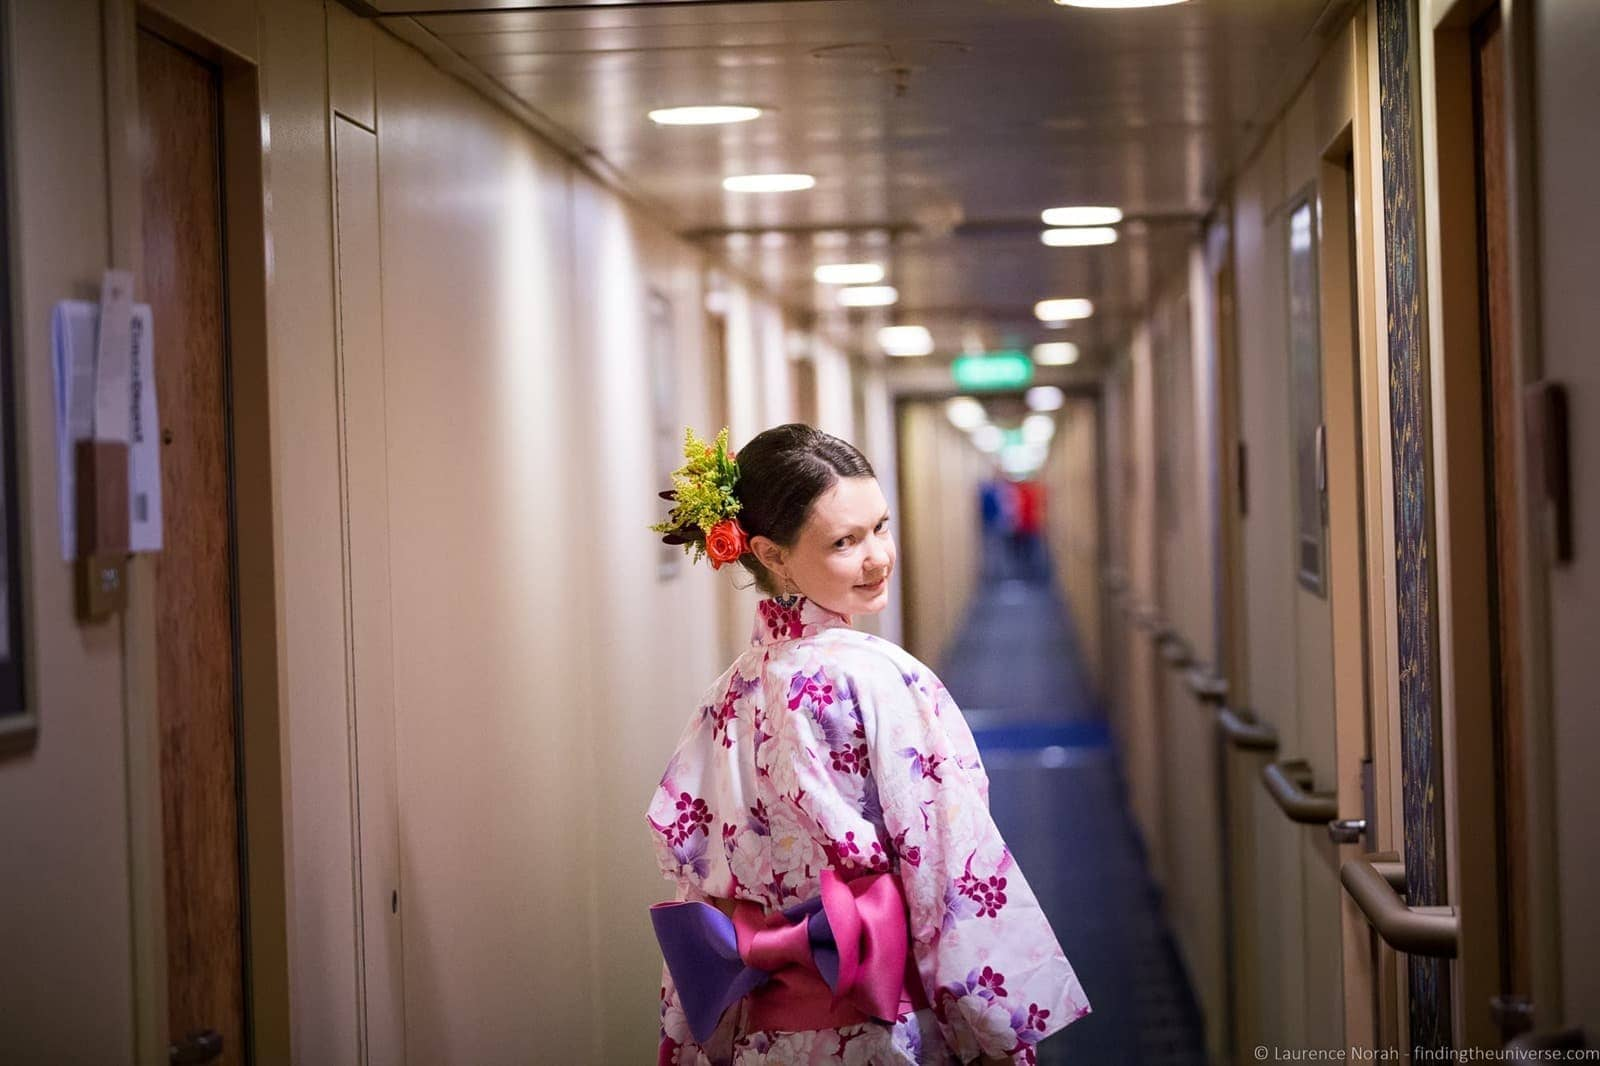 Onboard Holland America MS Amsterdam